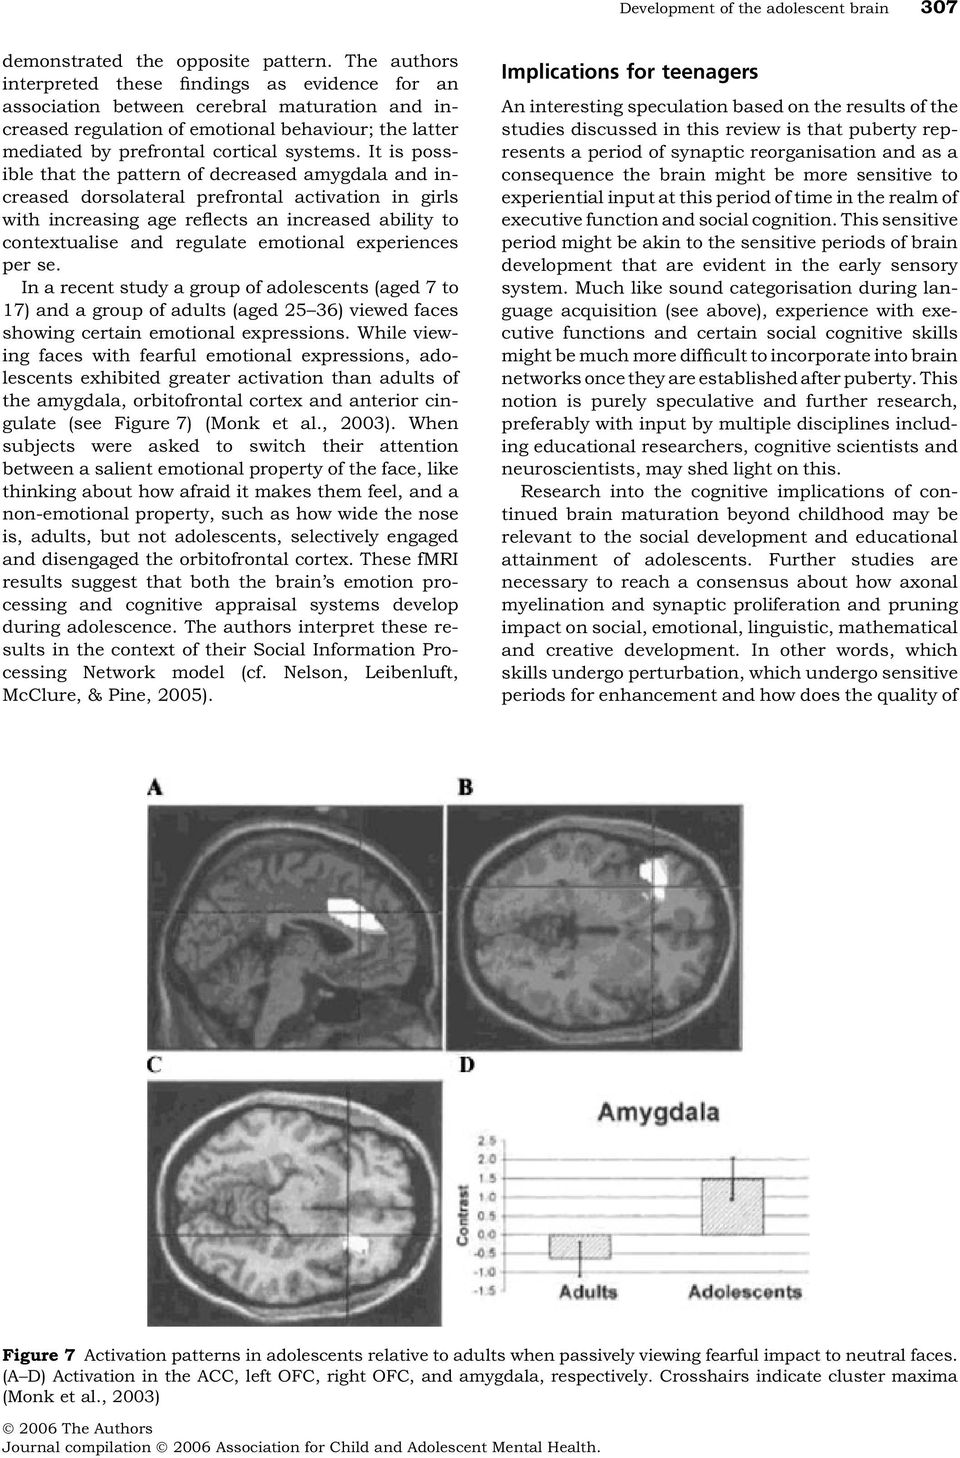 It is possible that the pattern of decreased amygdala and increased dorsolateral prefrontal activation in girls with increasing age reflects an increased ability to contextualise and regulate